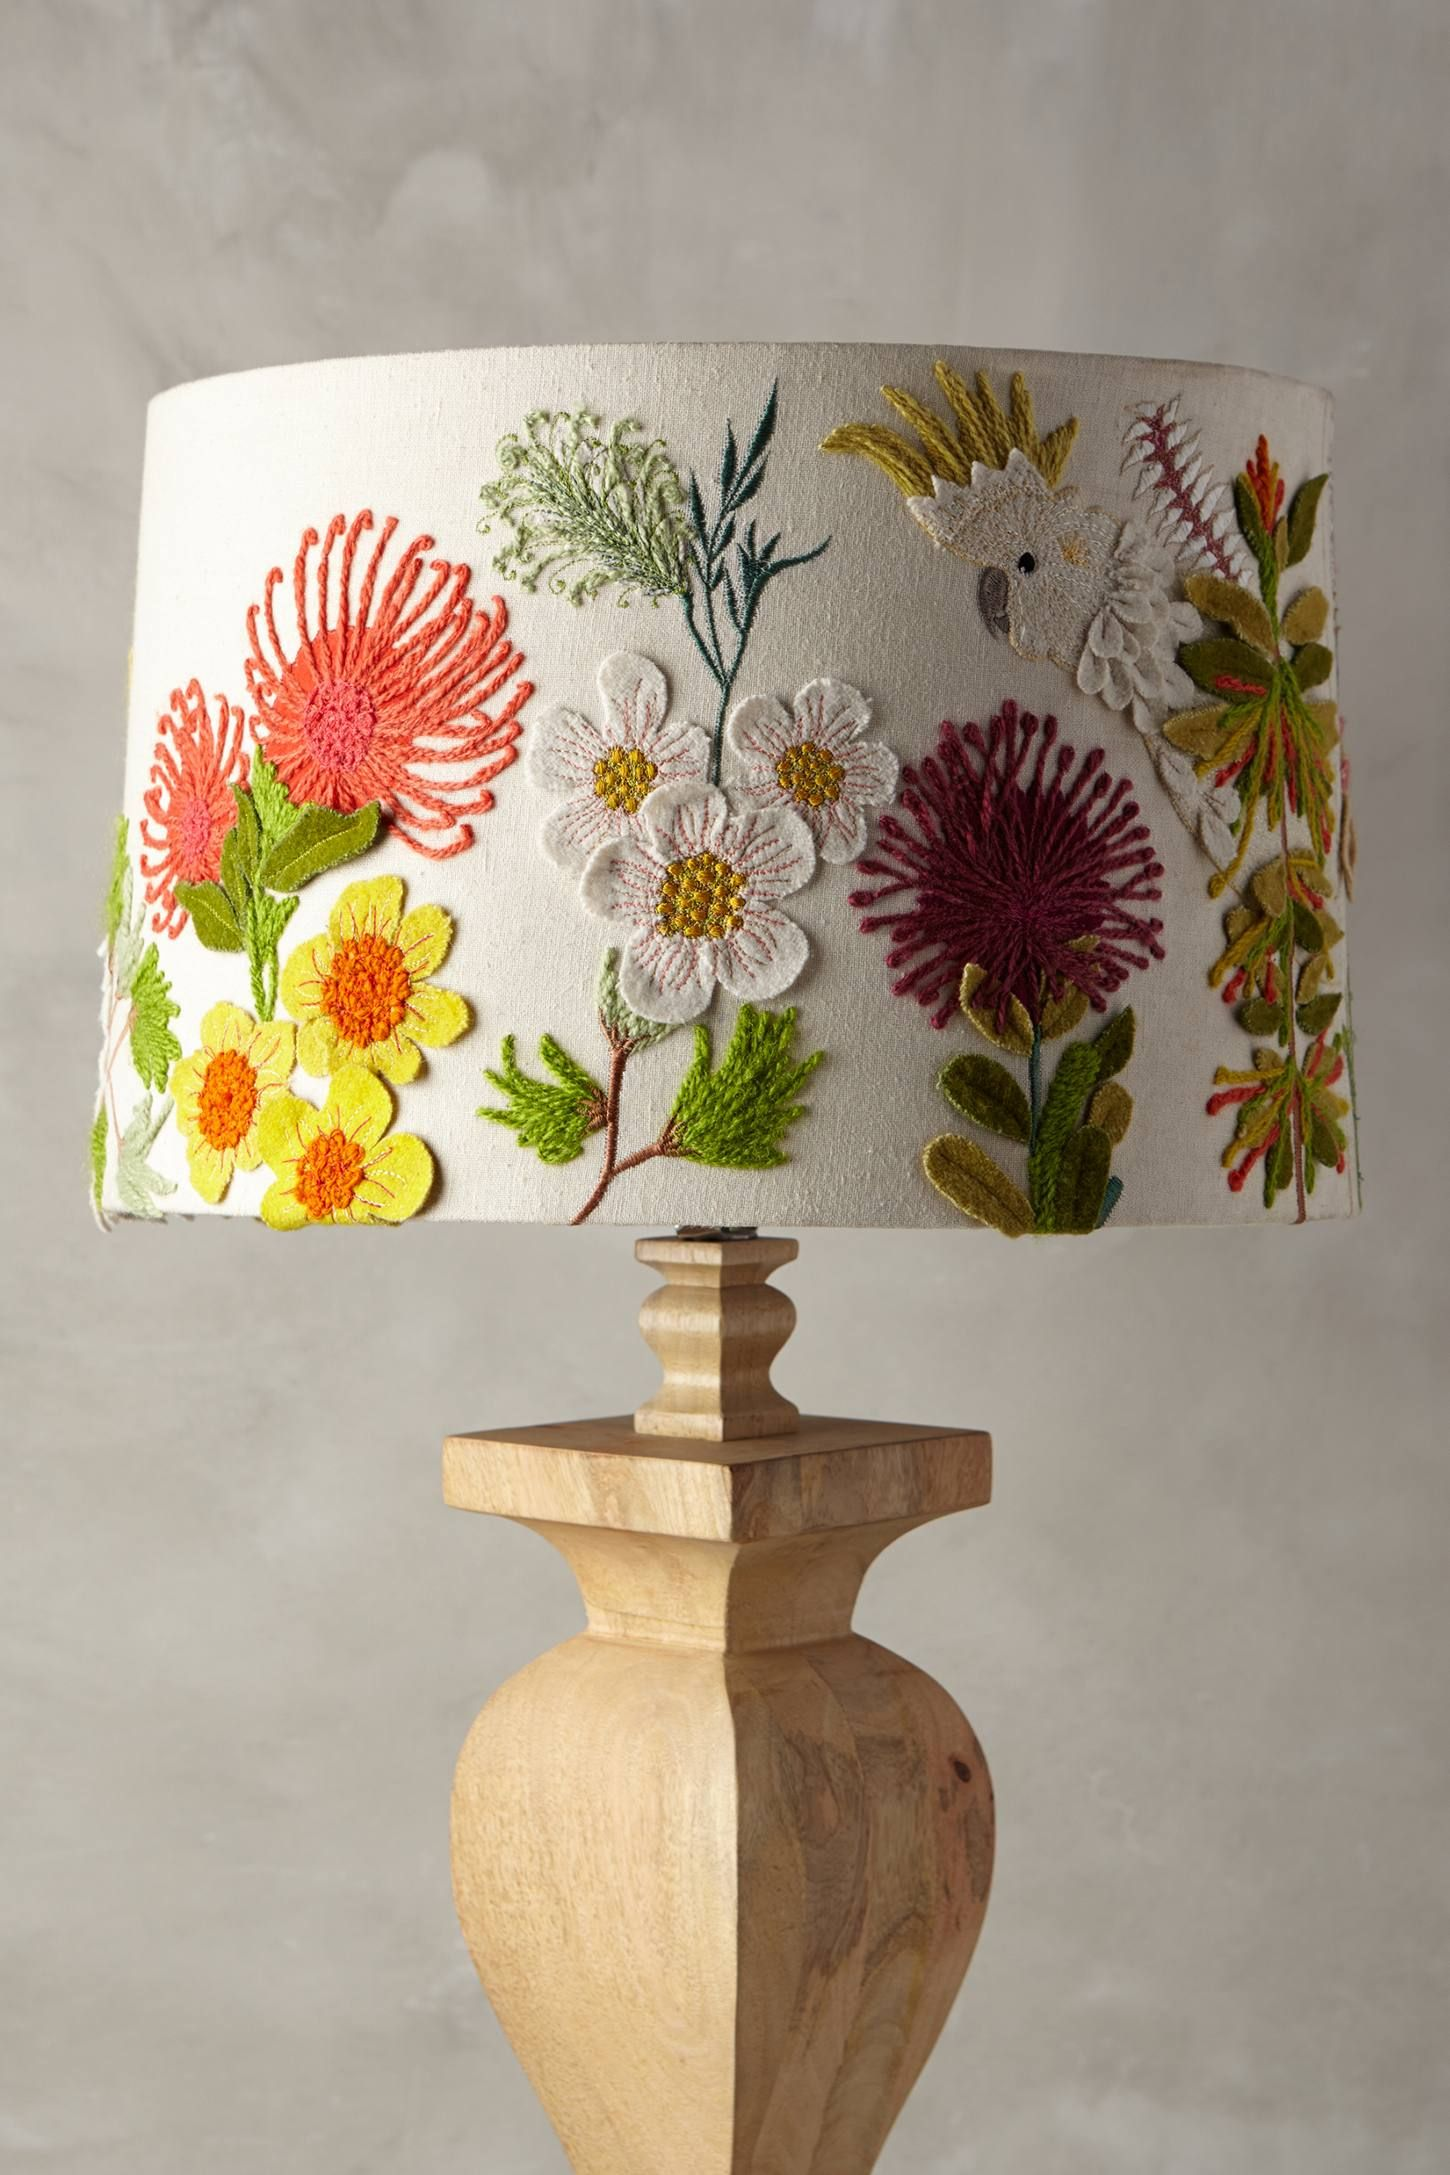 Embroidered Cockatoo Lamp Shade | Lampshades, Embroidery and Lights